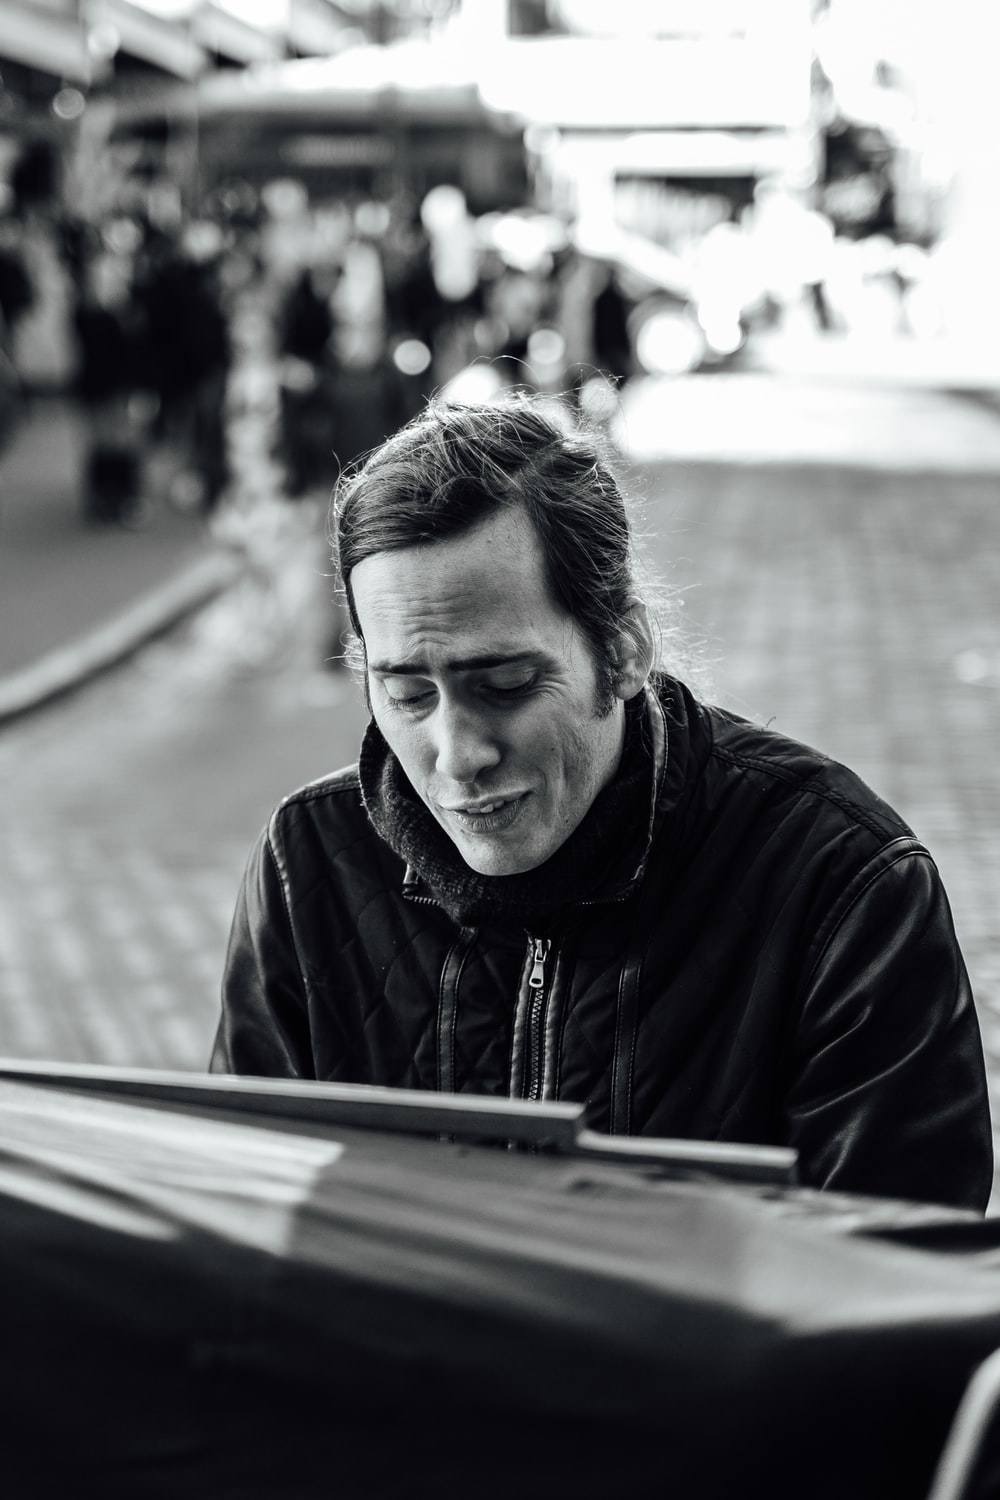 grayscale photography of man playing piano